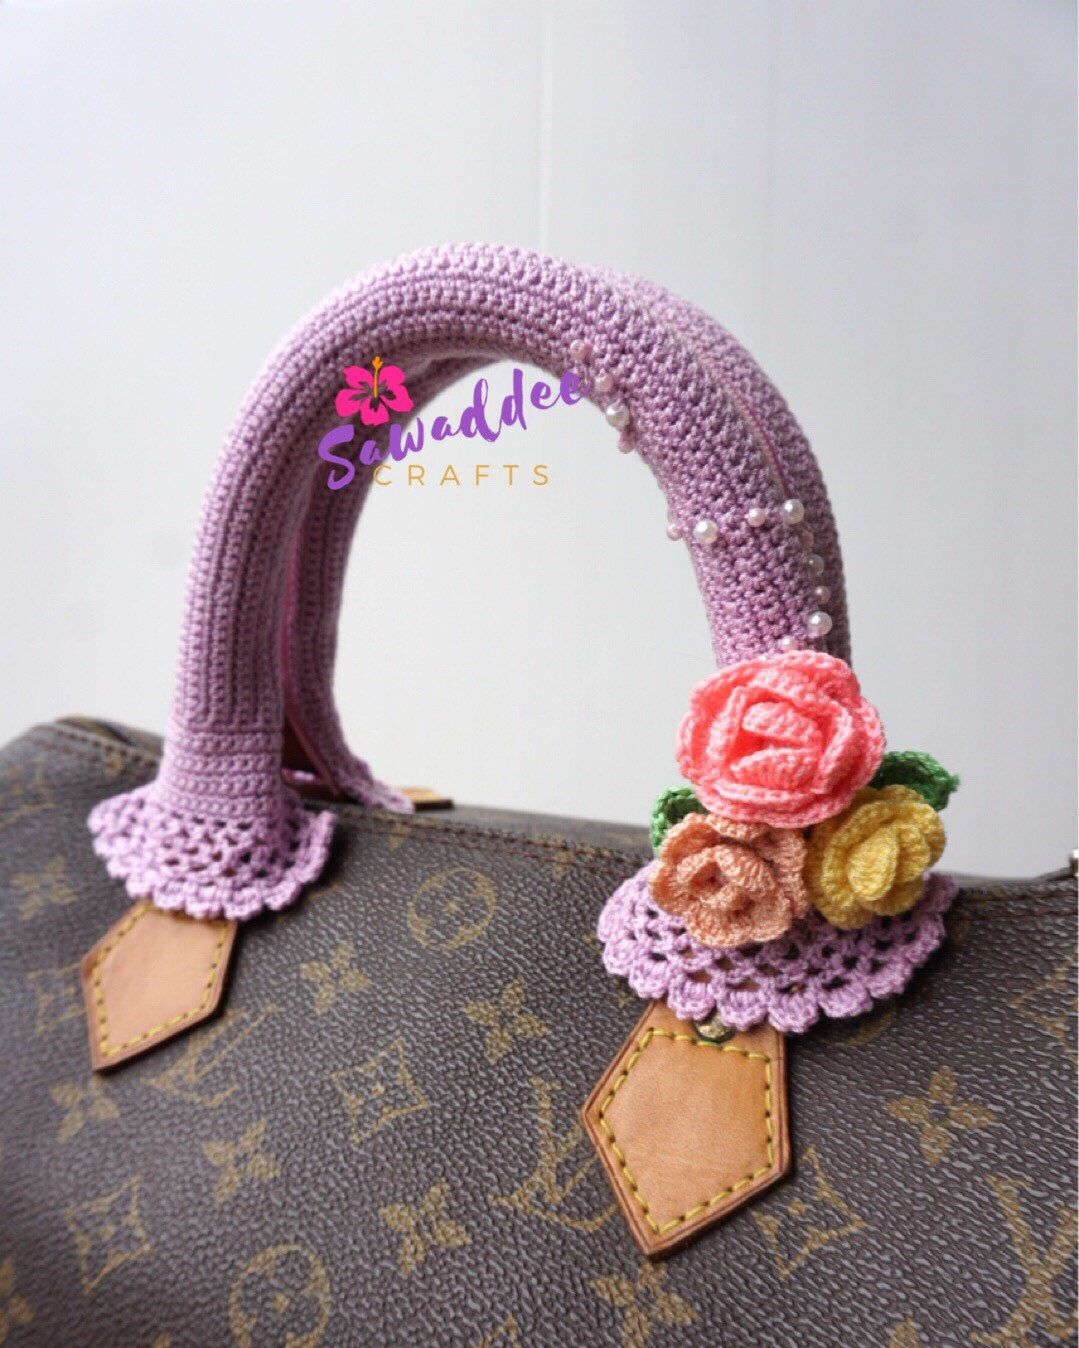 acc0302bac5a Excited to share this item from my  etsy shop  Free shipping  Beautiful  Handmade Crochet Bag Handle Cover   flowers for LV Louis Vuitton Speedy 25-30-35